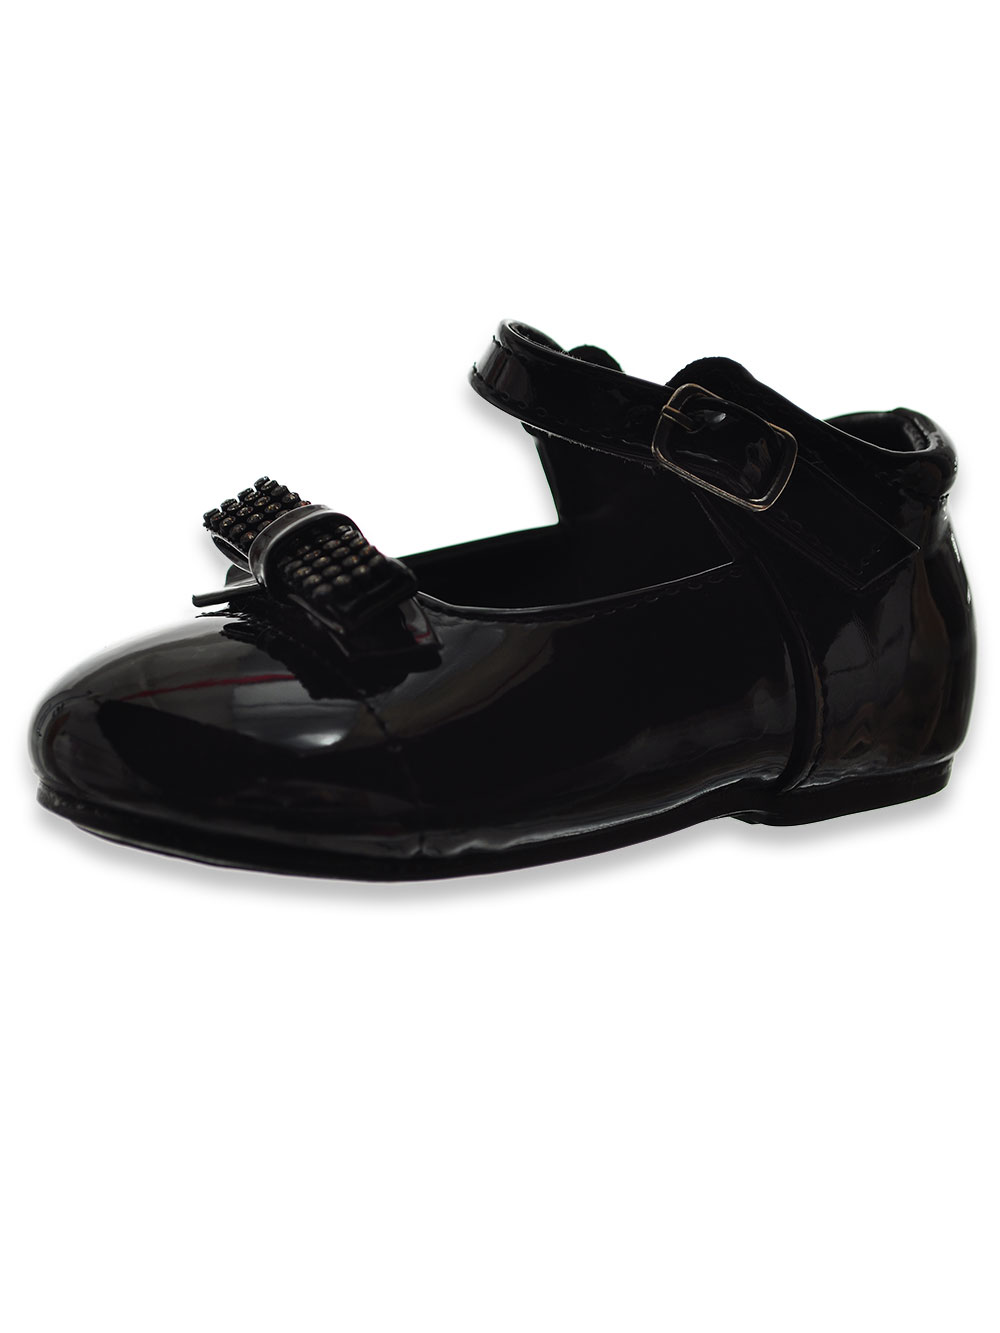 Girls' Bow-Tie Mary Janes Shoes